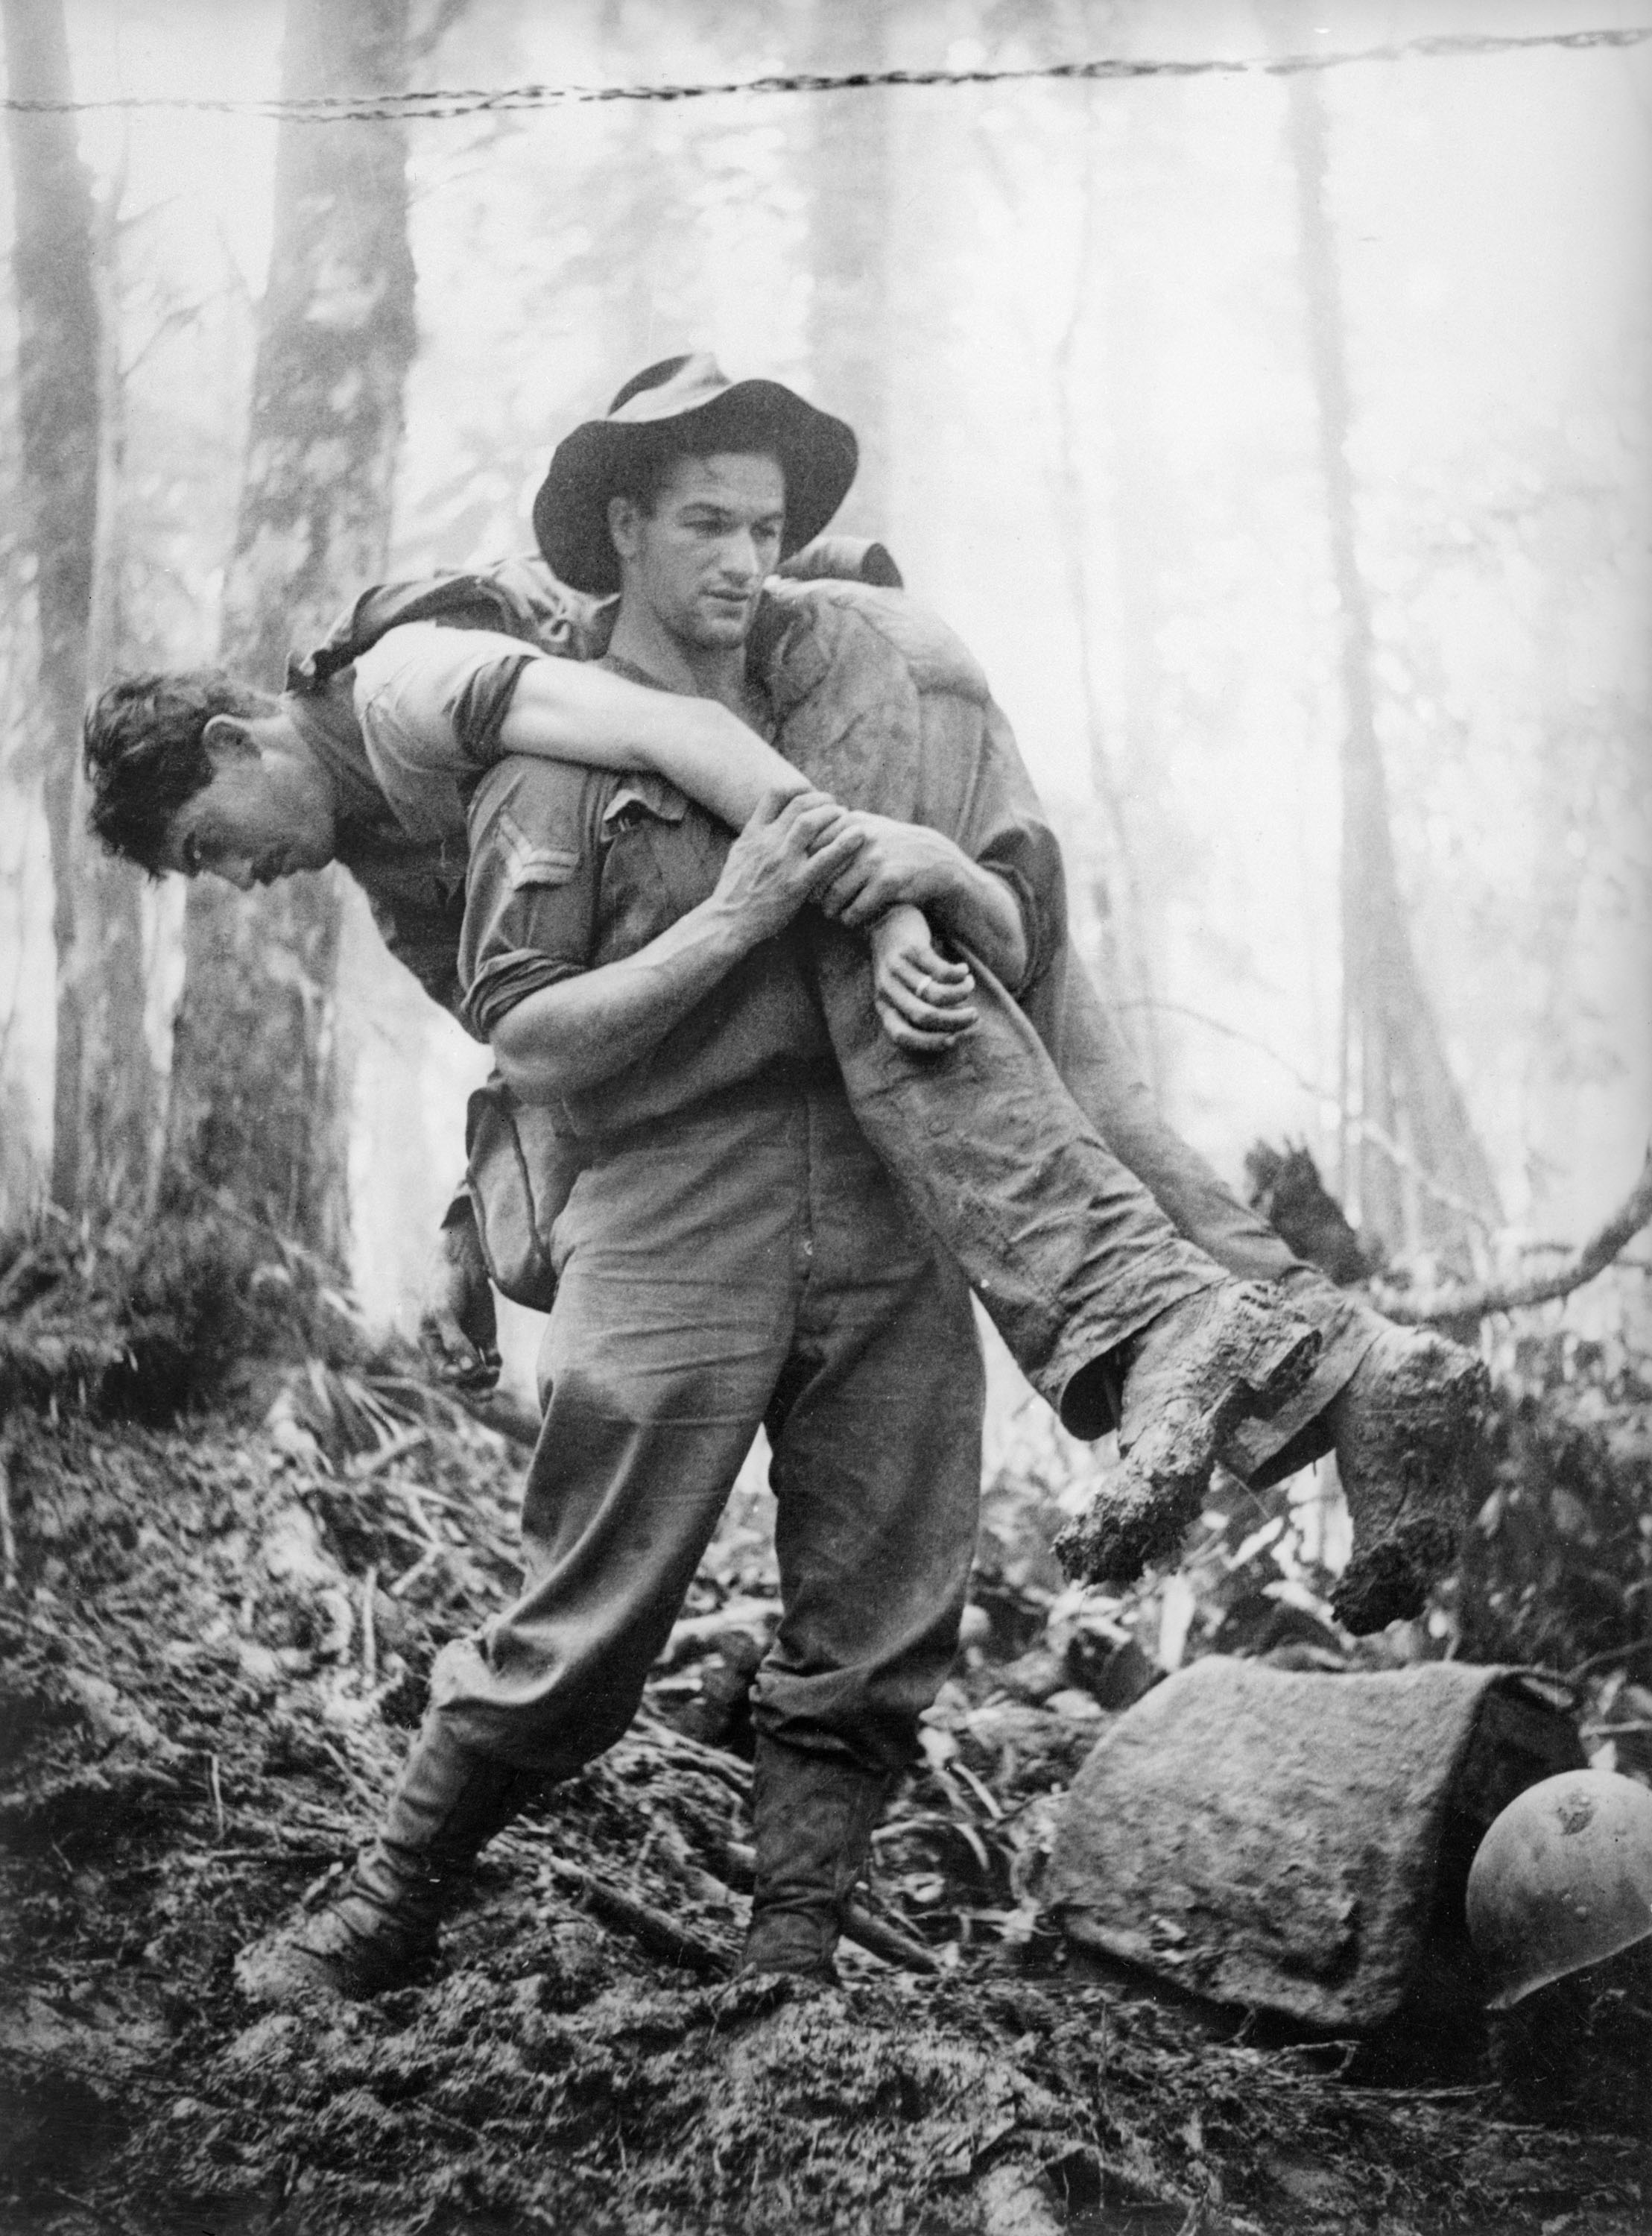 Allen rescuing a soldier off Mt Tambu, 30 July 1943.